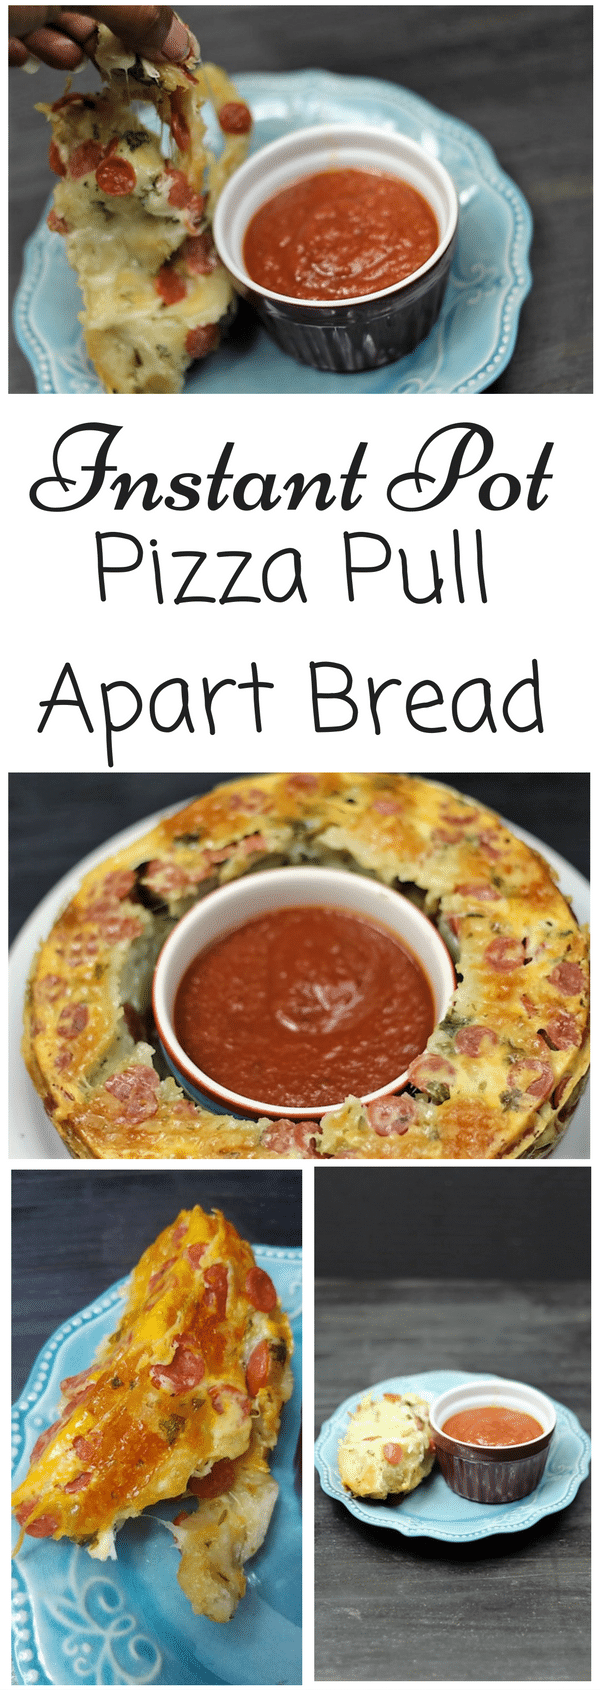 Instant Pot Pizza Pull Apart Bread